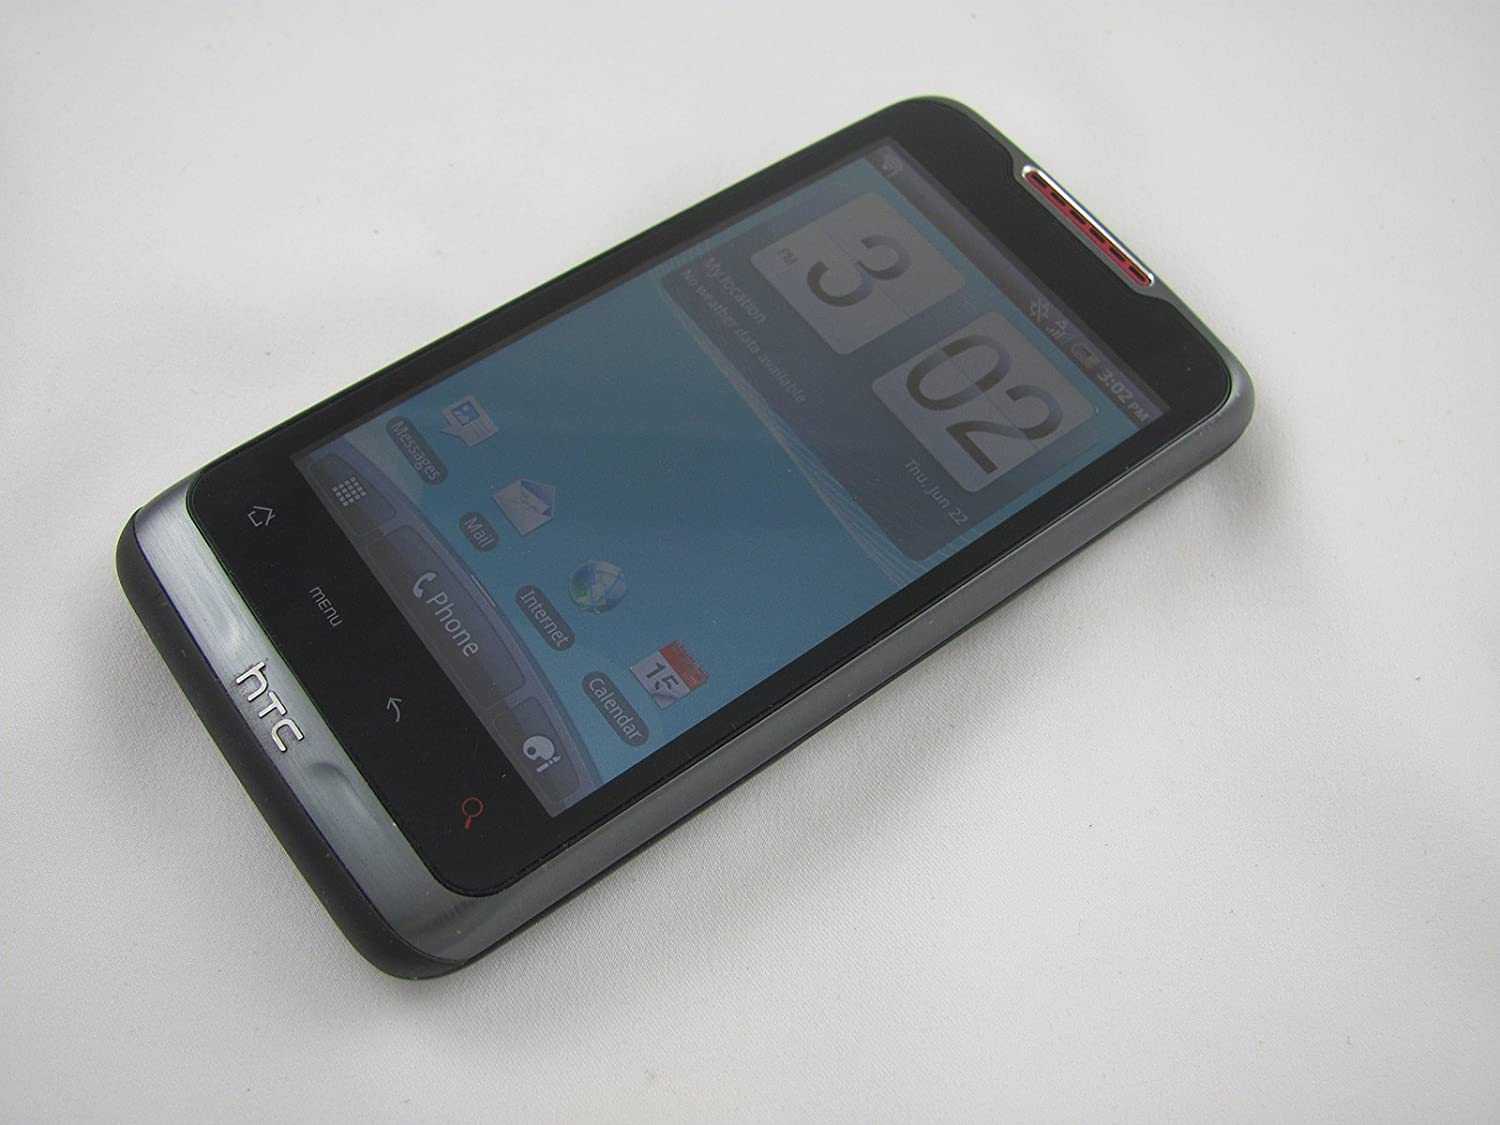 Amazon.com: HTC Merge ADR6325 Global 3G Android Smartphone US Cellular: Cell  Phones & Accessories